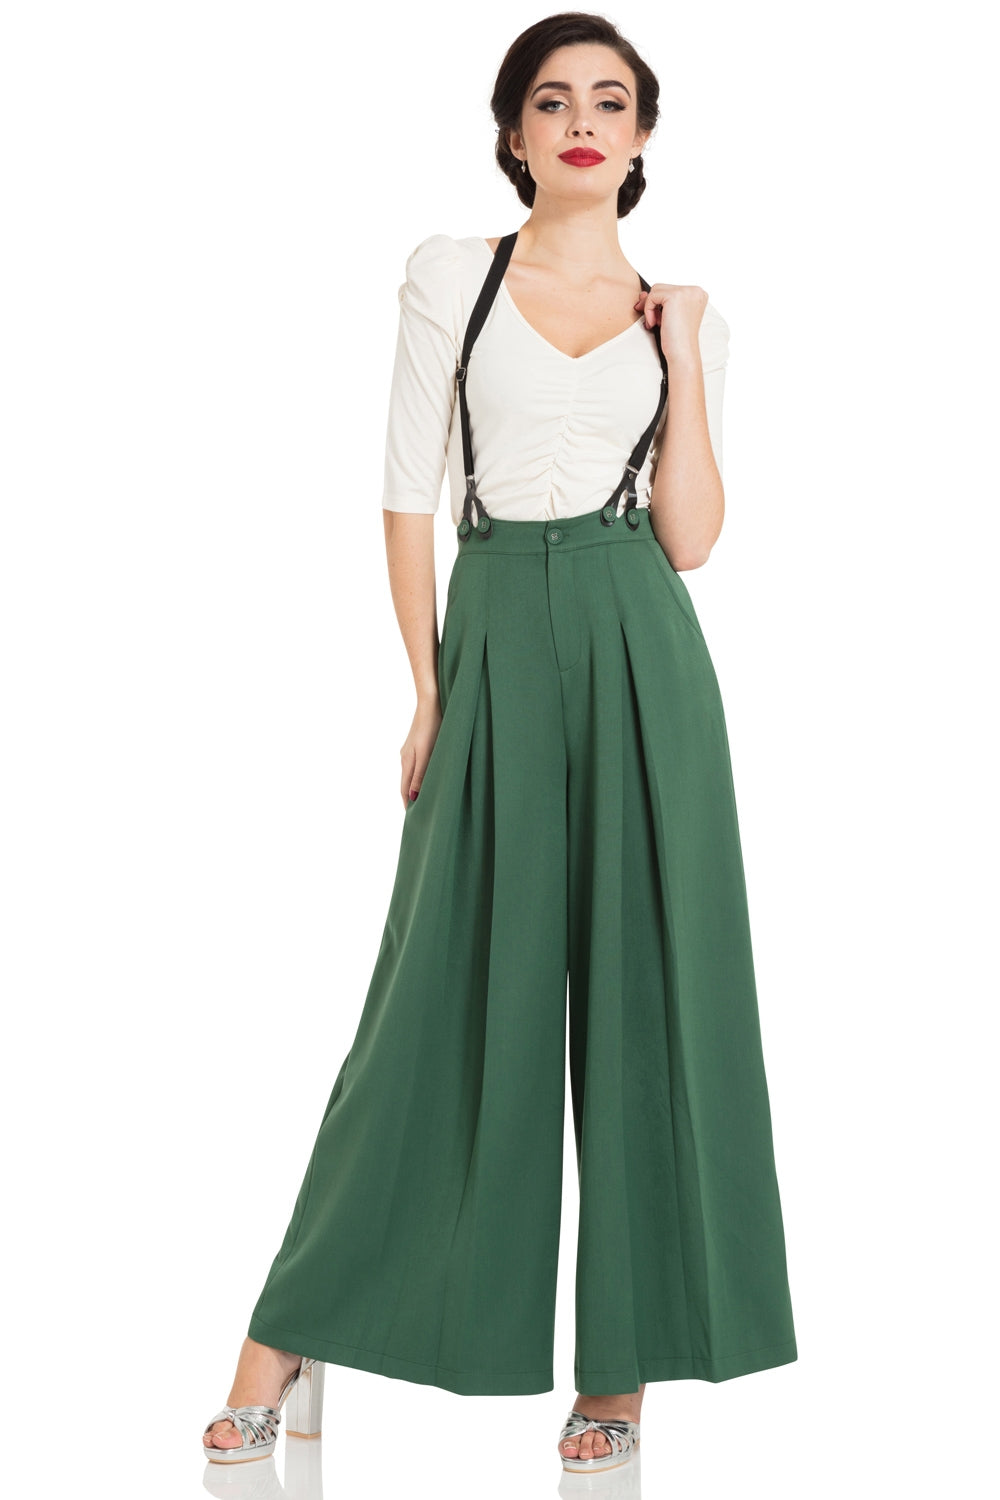 Laura green 40s style trousers by Voodoo Vixen